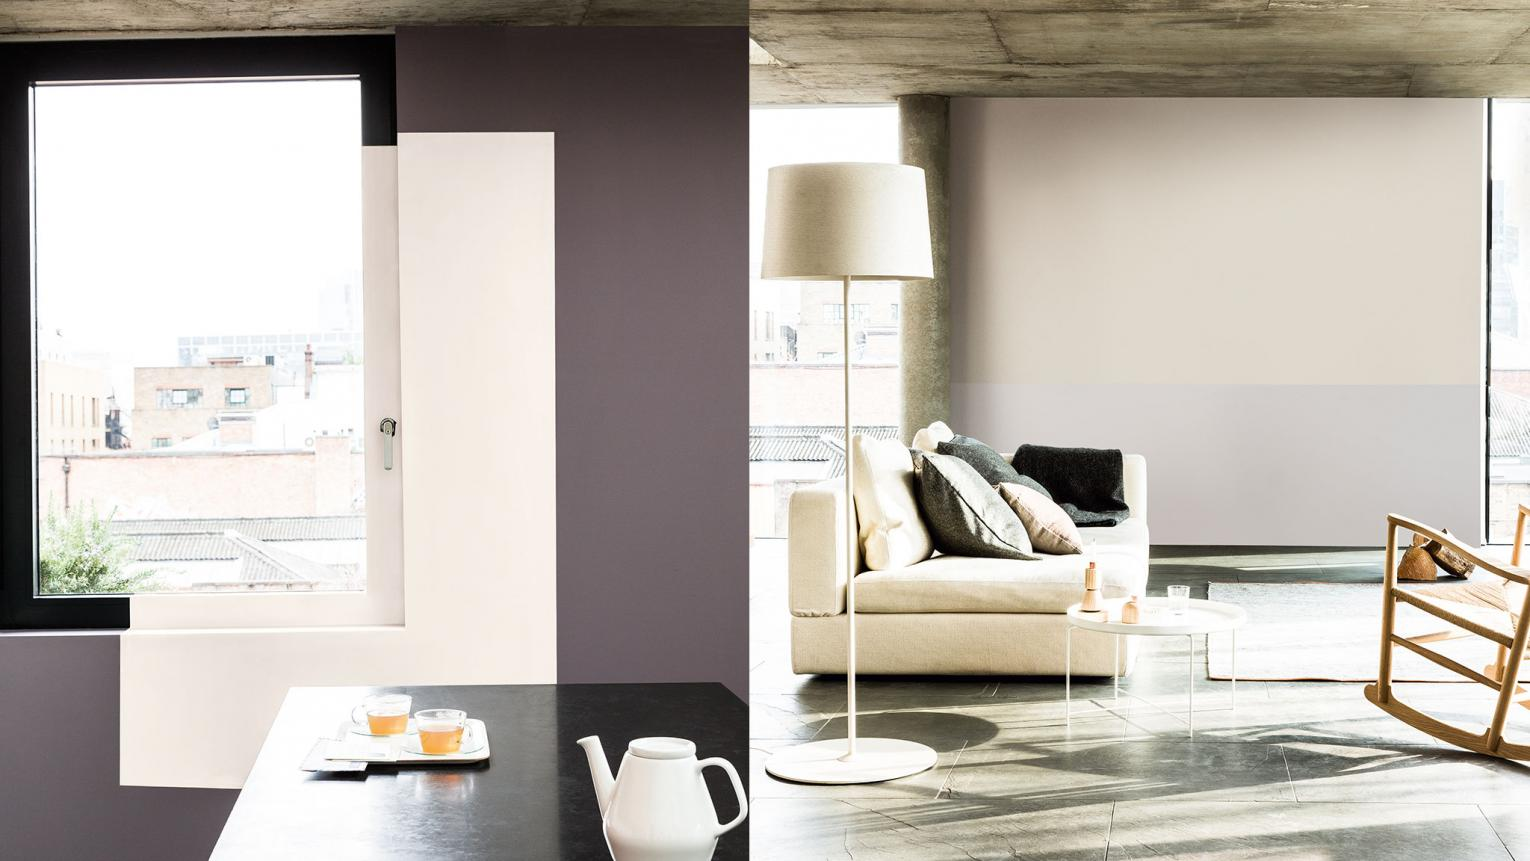 Discover how to use paint to reclaim forgotten areas like windows and alcoves in your home – a big trend for 2015.